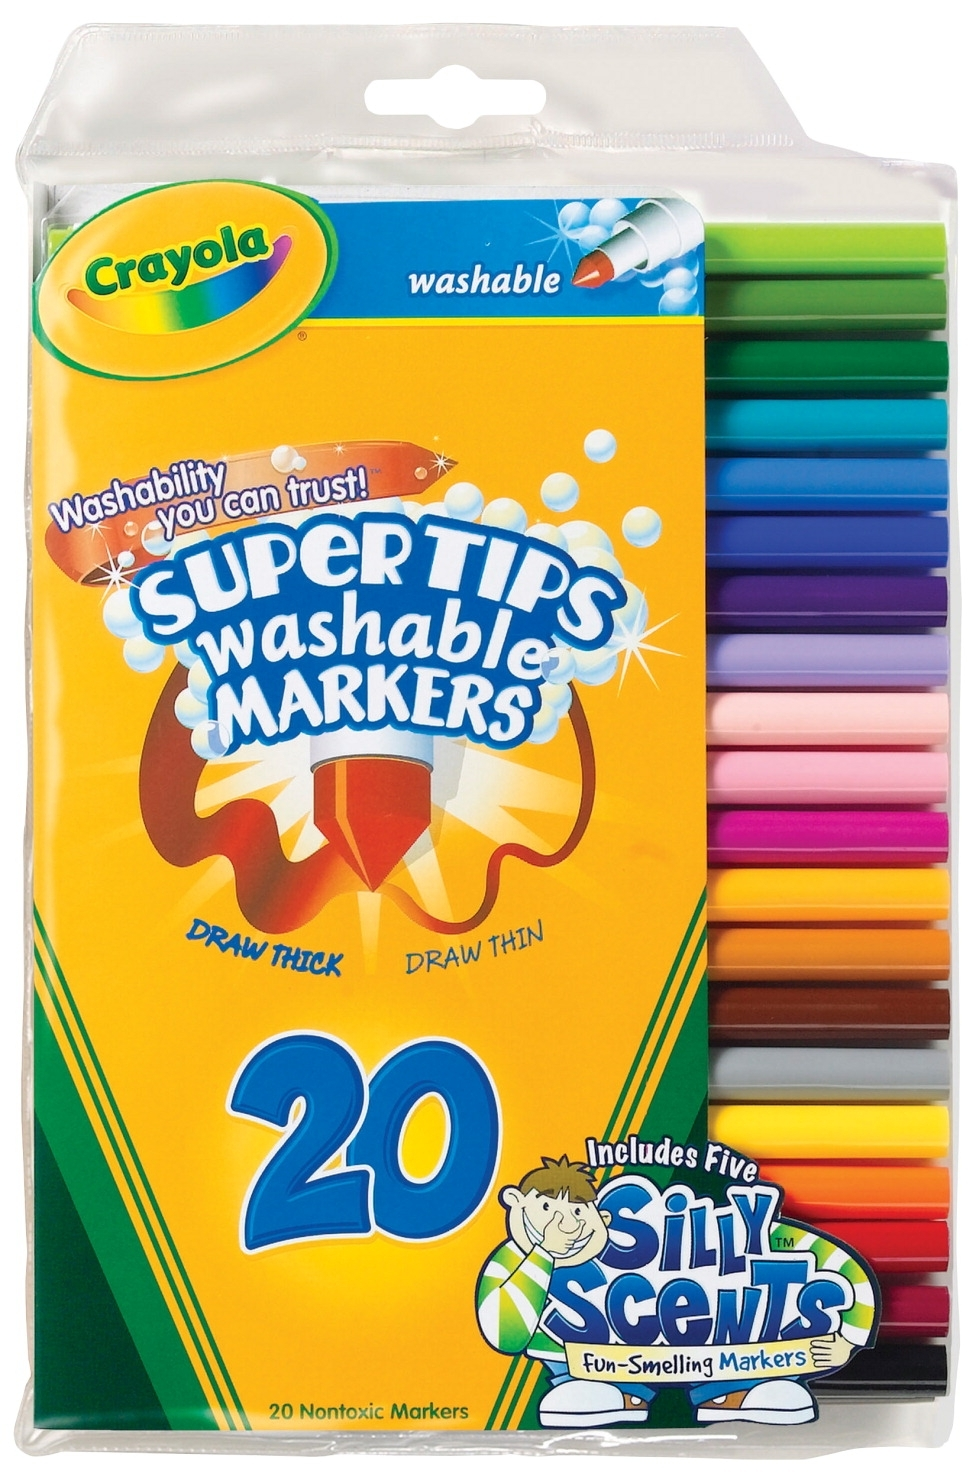 Learning: Supplies Drawing Markers Washable Markers - 410492 - Crayola Non-toxic Washable Marker Set With 5 Scented Markers; Super Tip; Assorted Colors; Set Of 20 410492